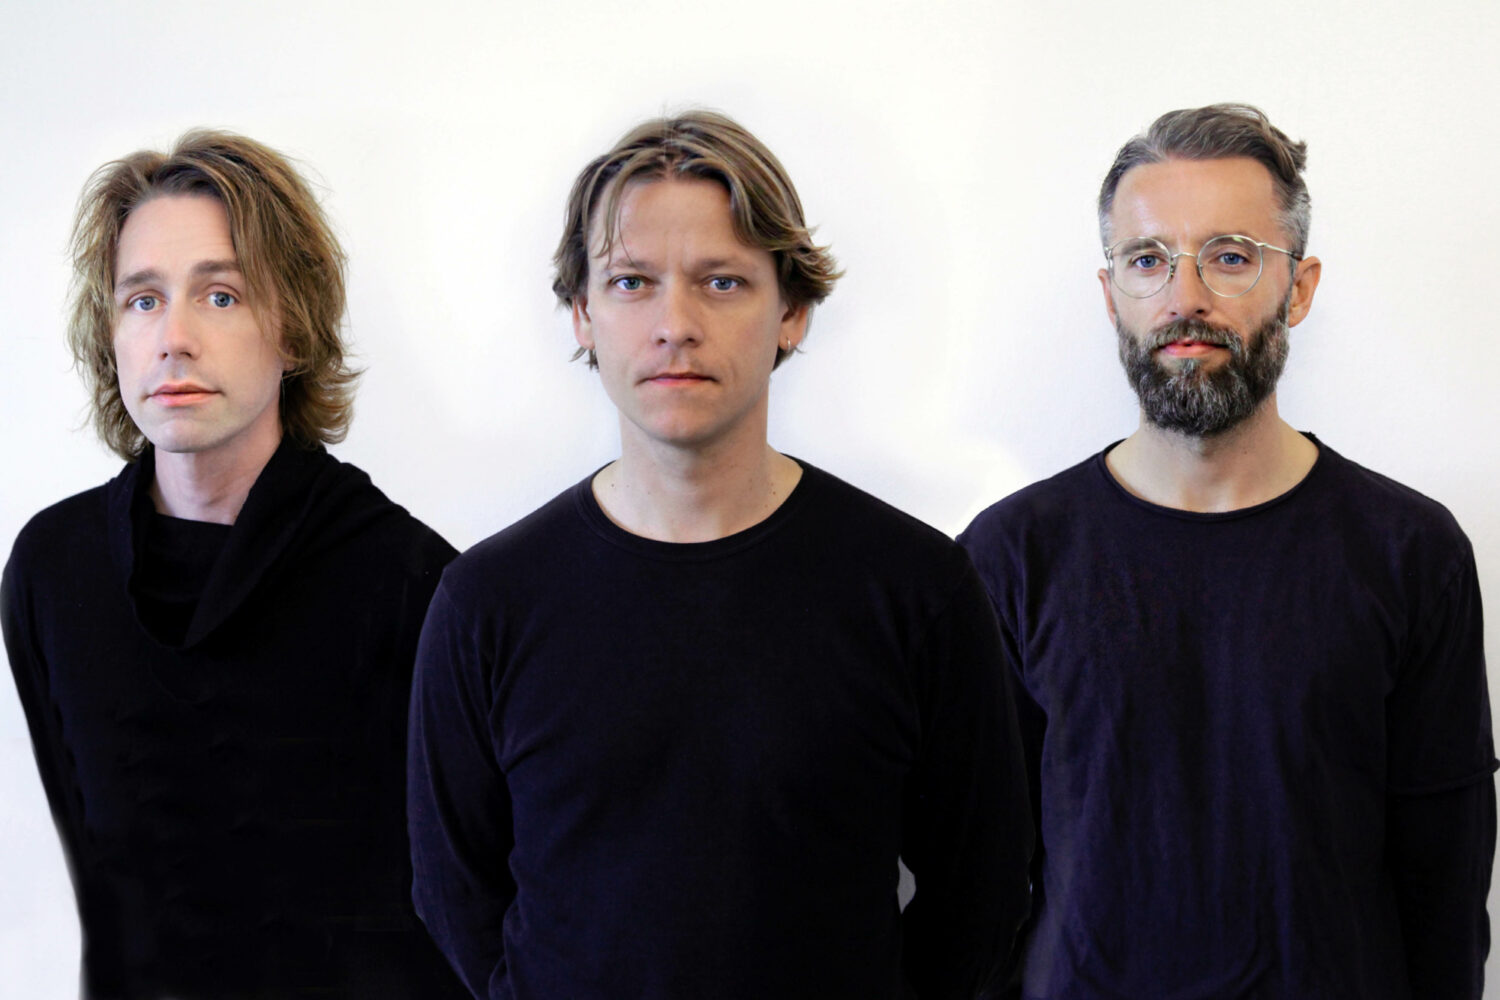 Mew to release new album 'Visuals' in April